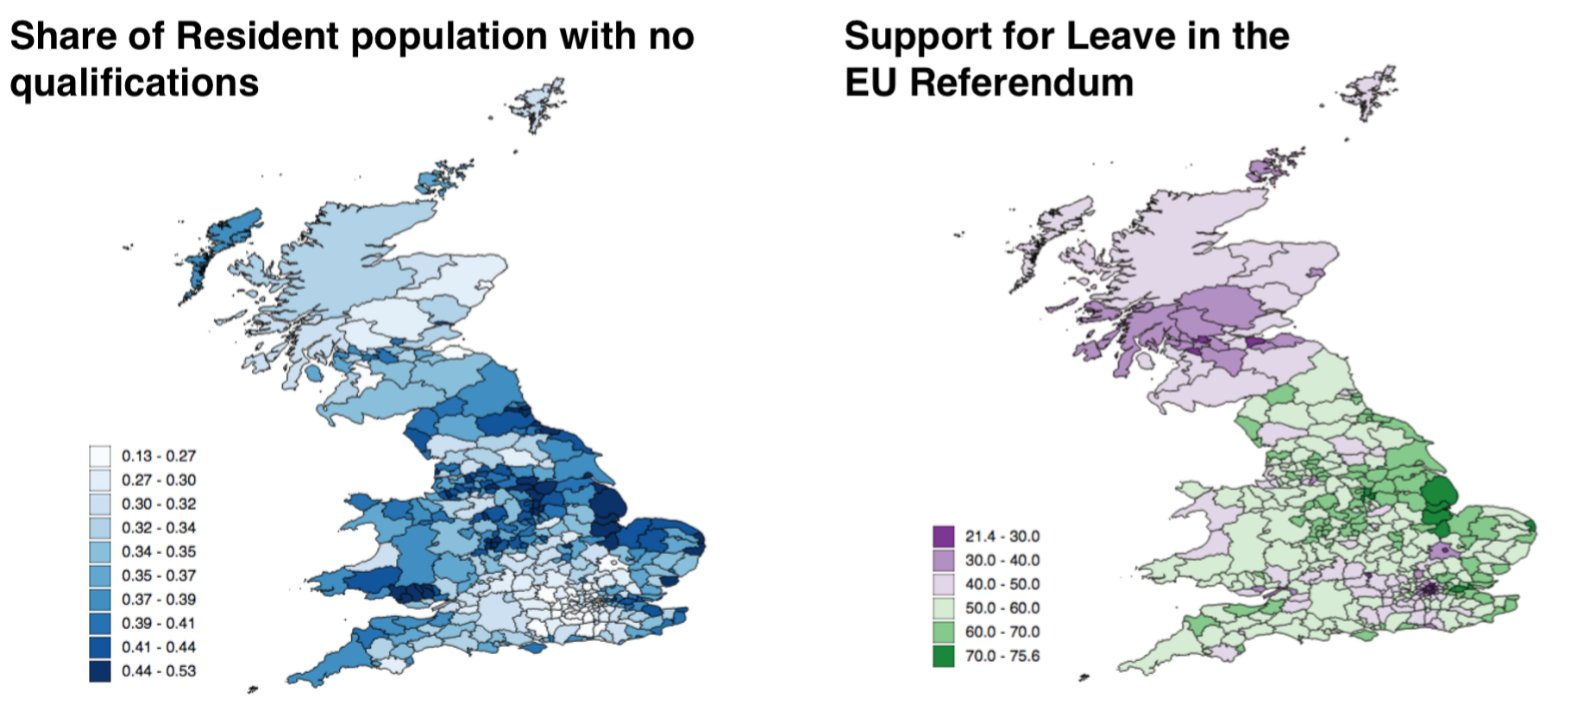 Support for the Leave side and share of population with no formal qualification or high school degree.